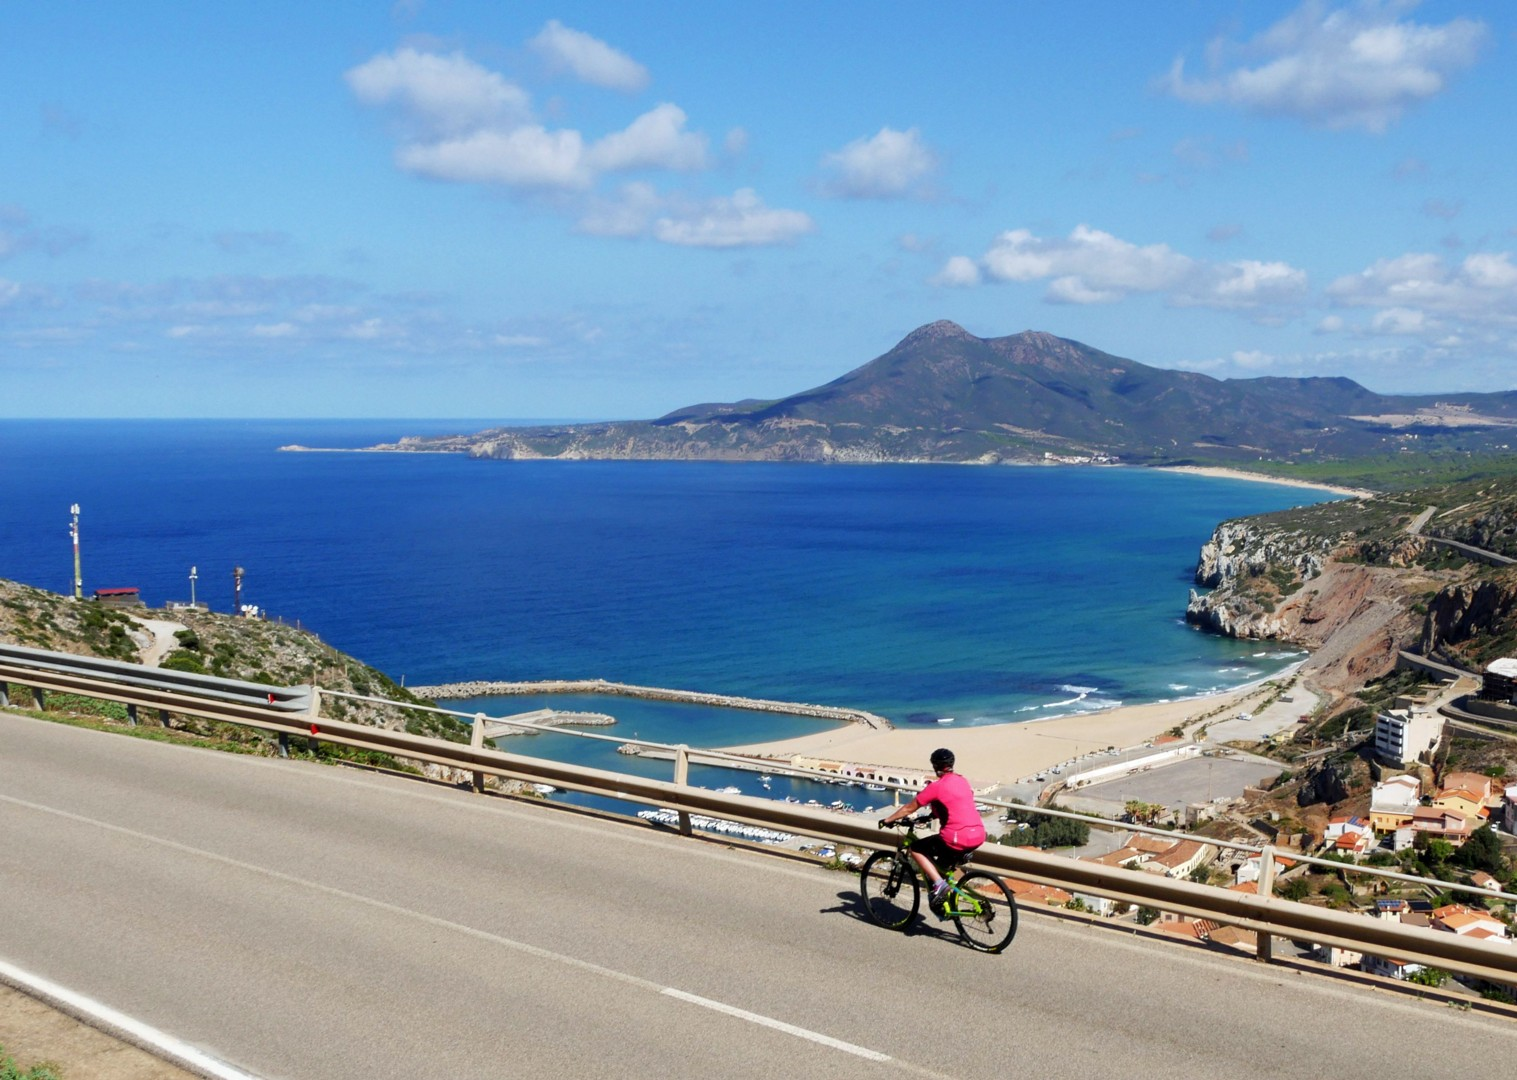 sardinia-island-cycling-holiday.jpg - Italy - Sardinia - Island Flavours - Guided Leisure Cycling Holiday - Leisure Cycling